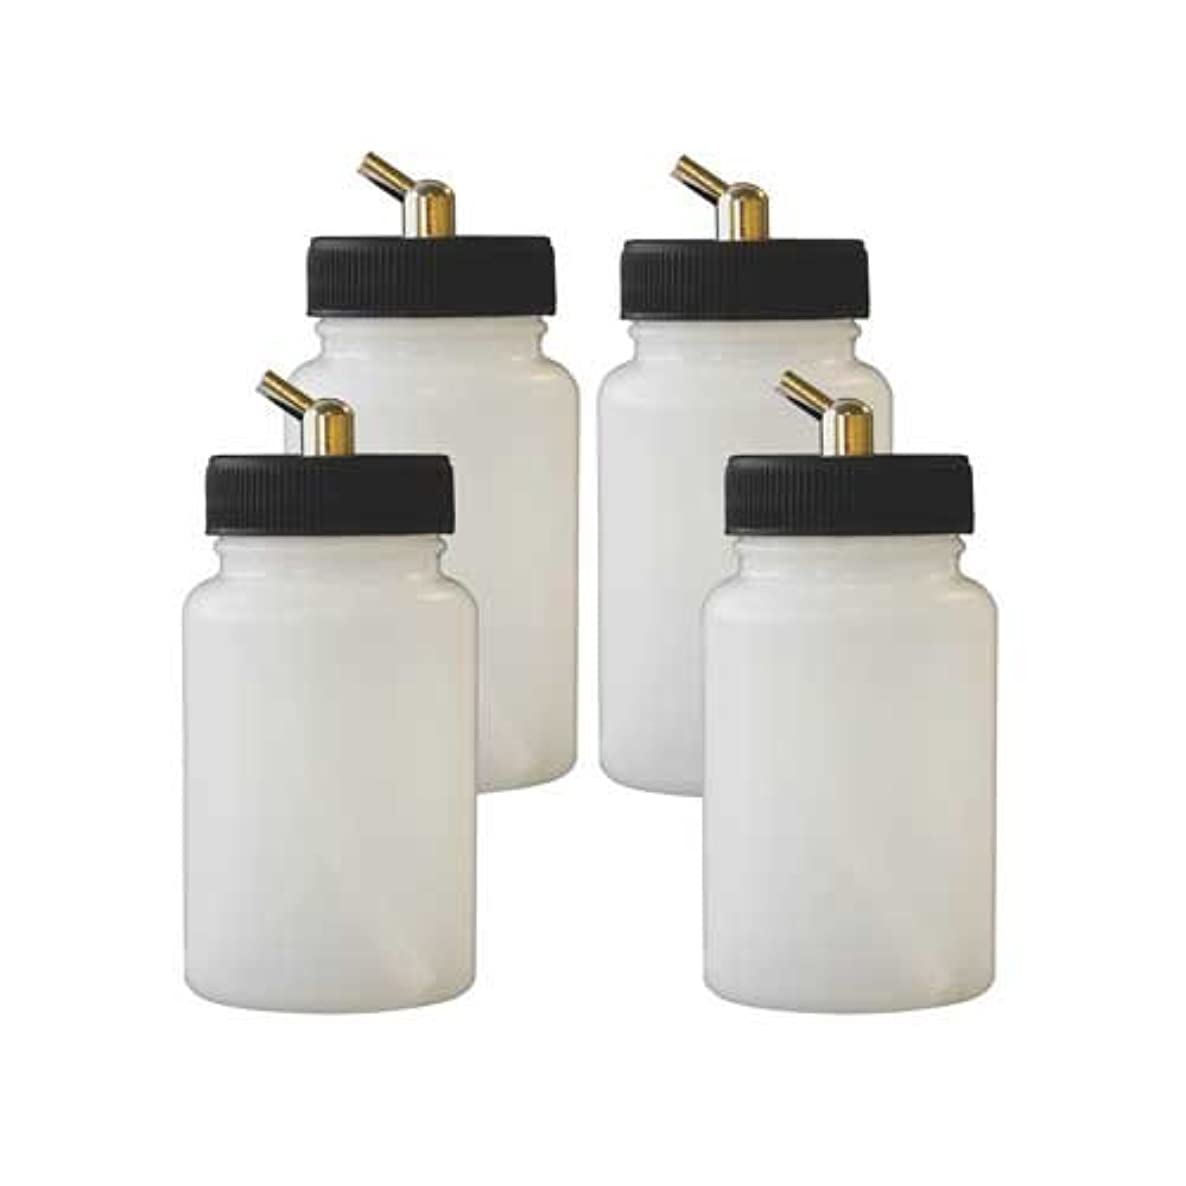 Paasche Airbrush BA-30-3P-4 3 oz Bottle Assembly for H or EZ Airbrush